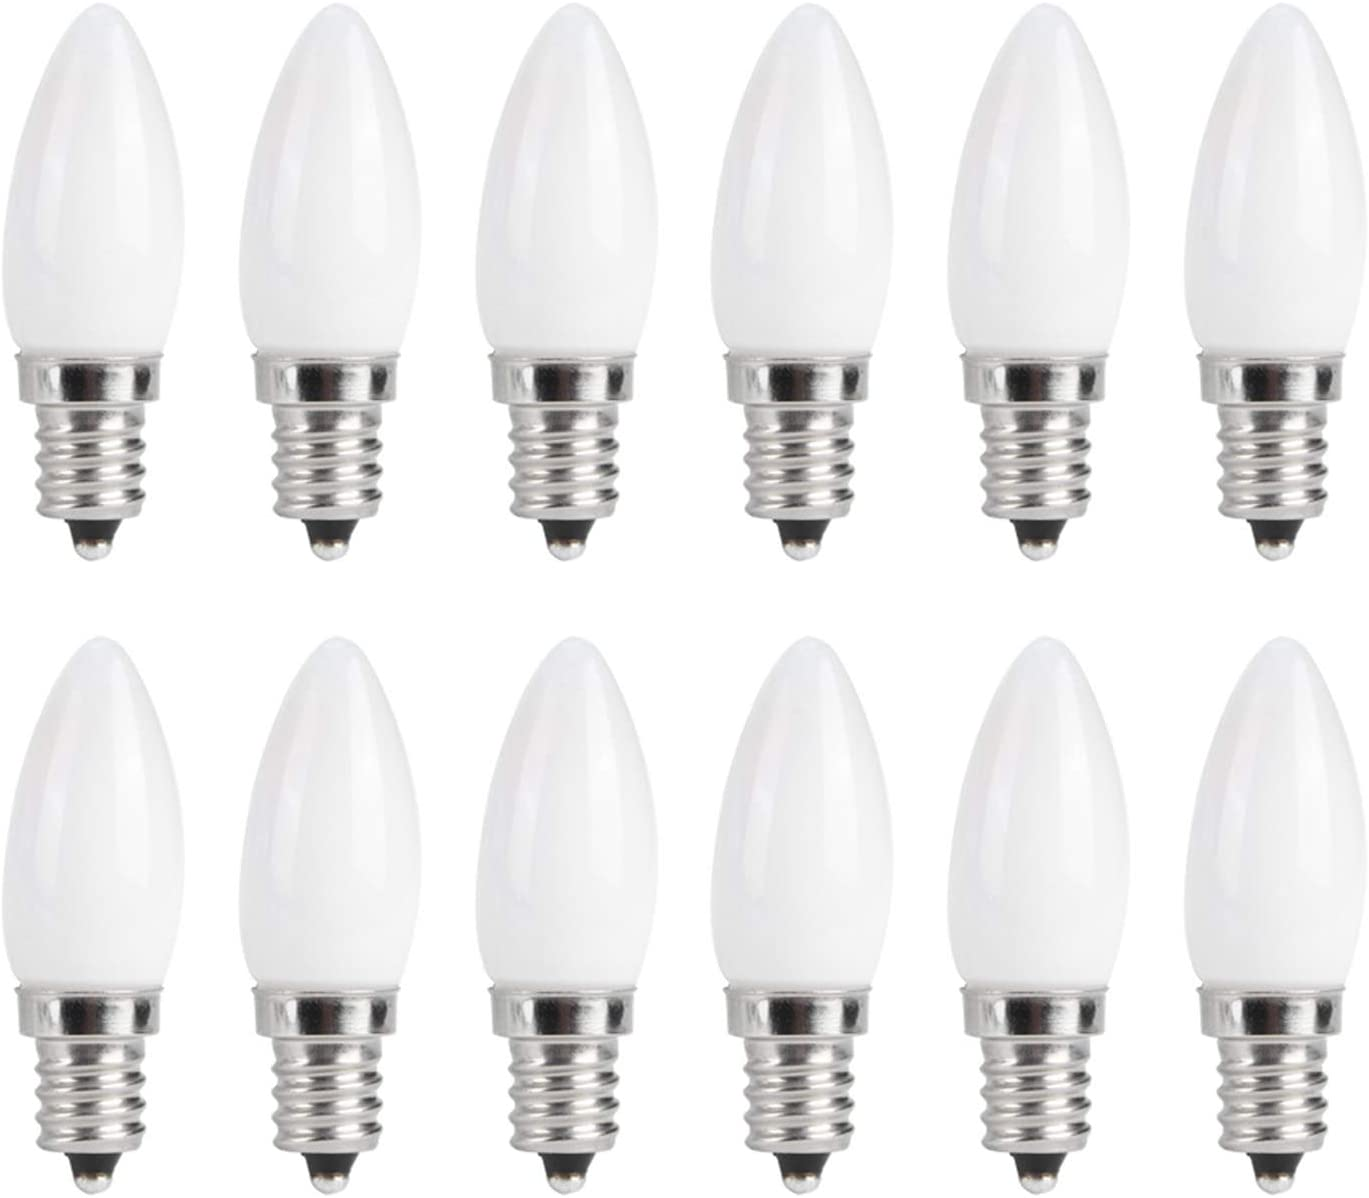 10PCS E12 LED Bulb Limited time for free shipping 1.5W Warm Lamp Las Vegas Mall White L Candelabra Chandelier